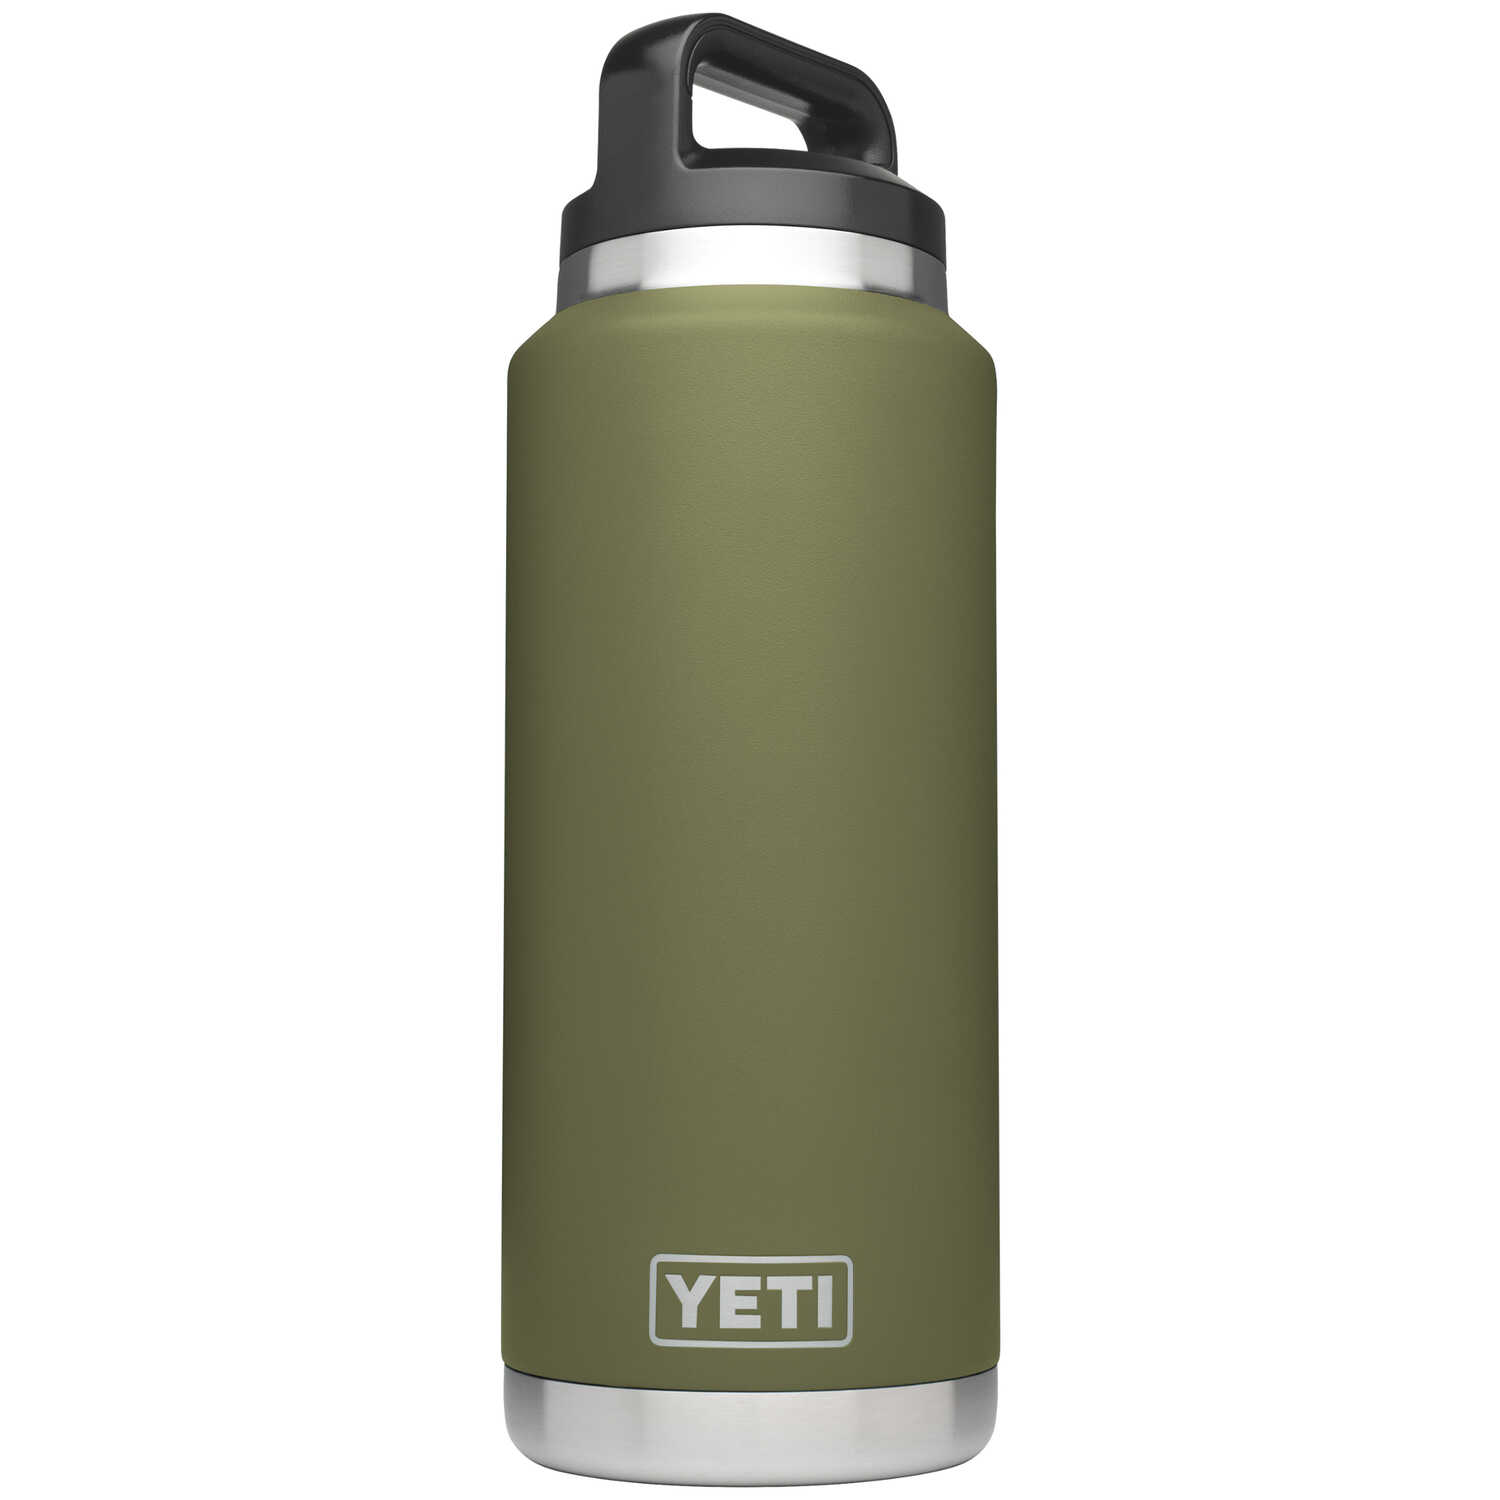 YETI  Rambler  Olive Green  Stainless Steel  Insulated Bottle  BPA Free 36 oz.